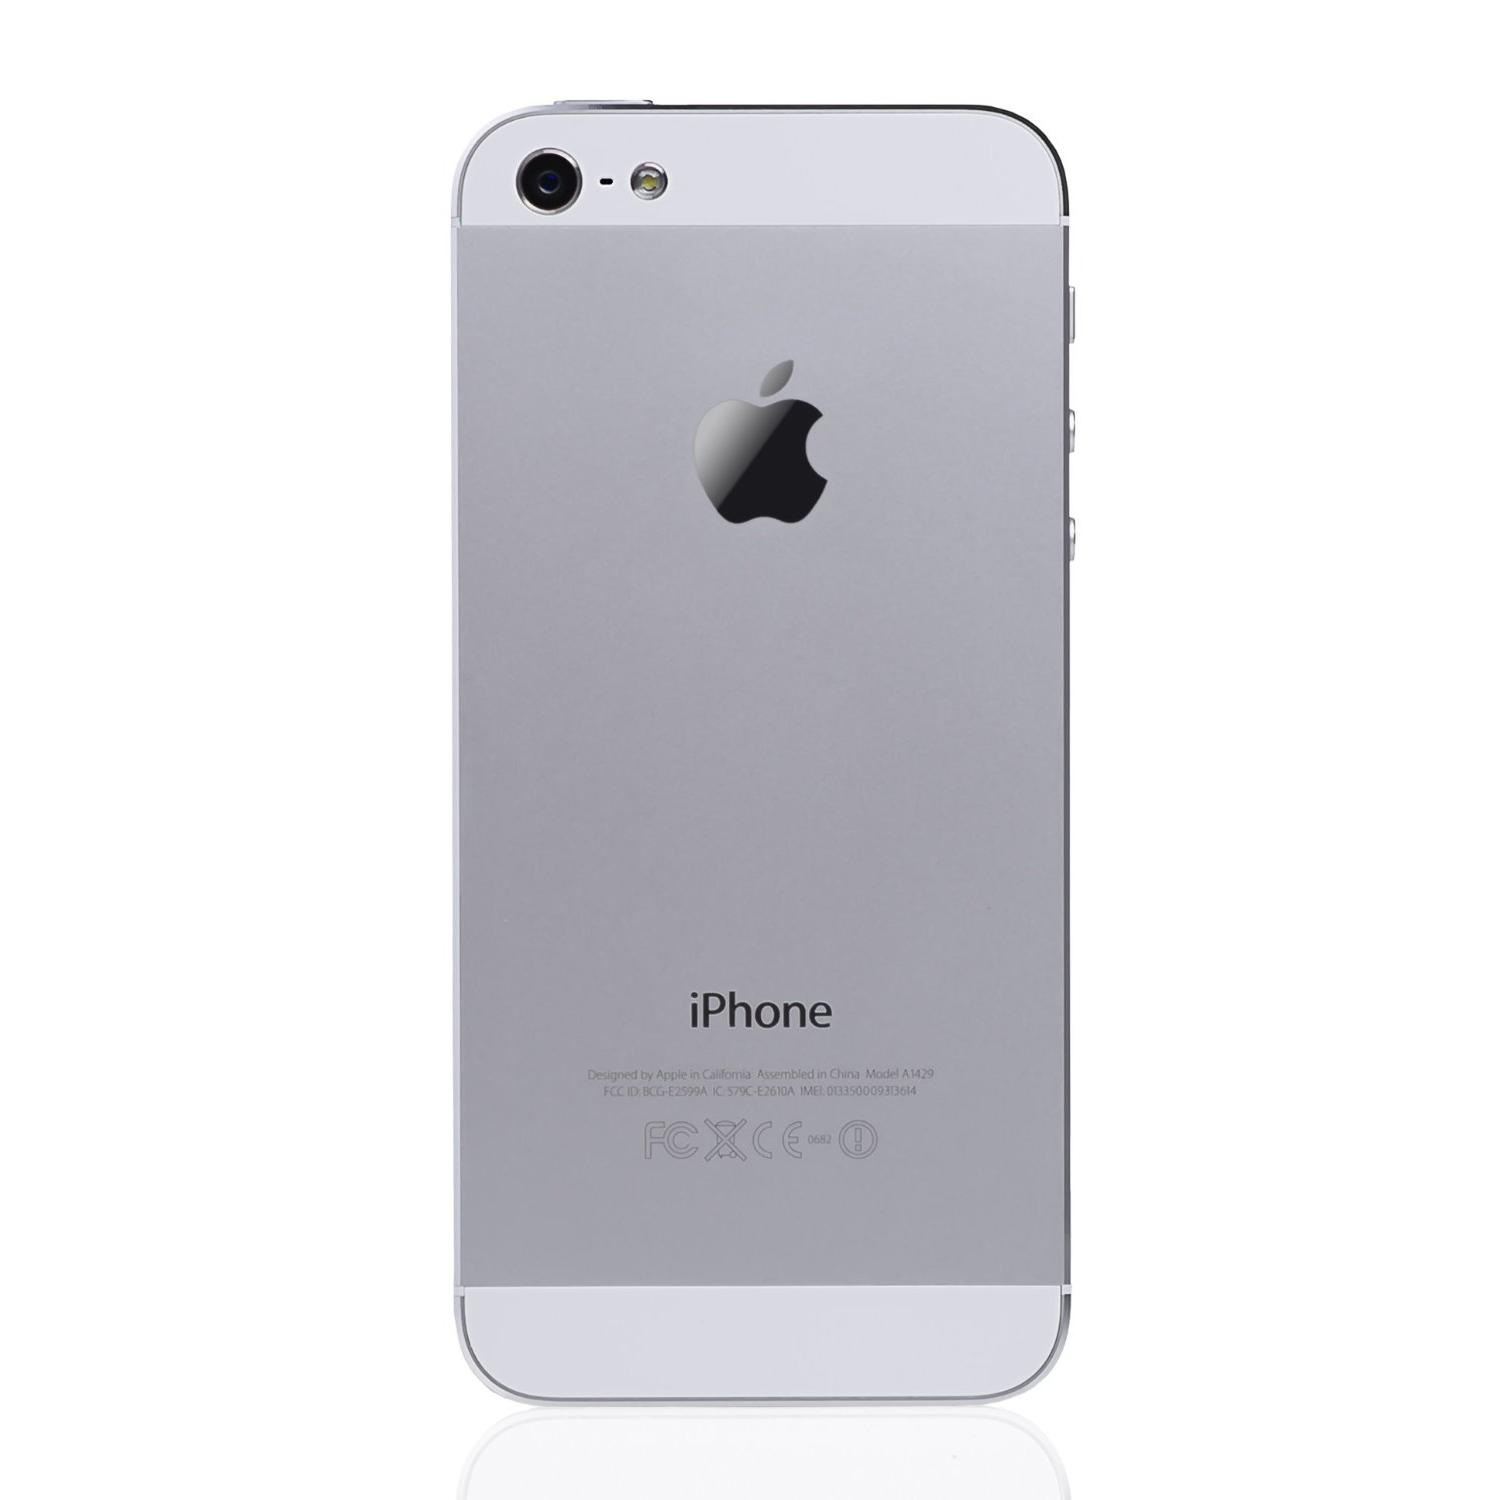 iPhone 5 64 GB - Blanco - Libre